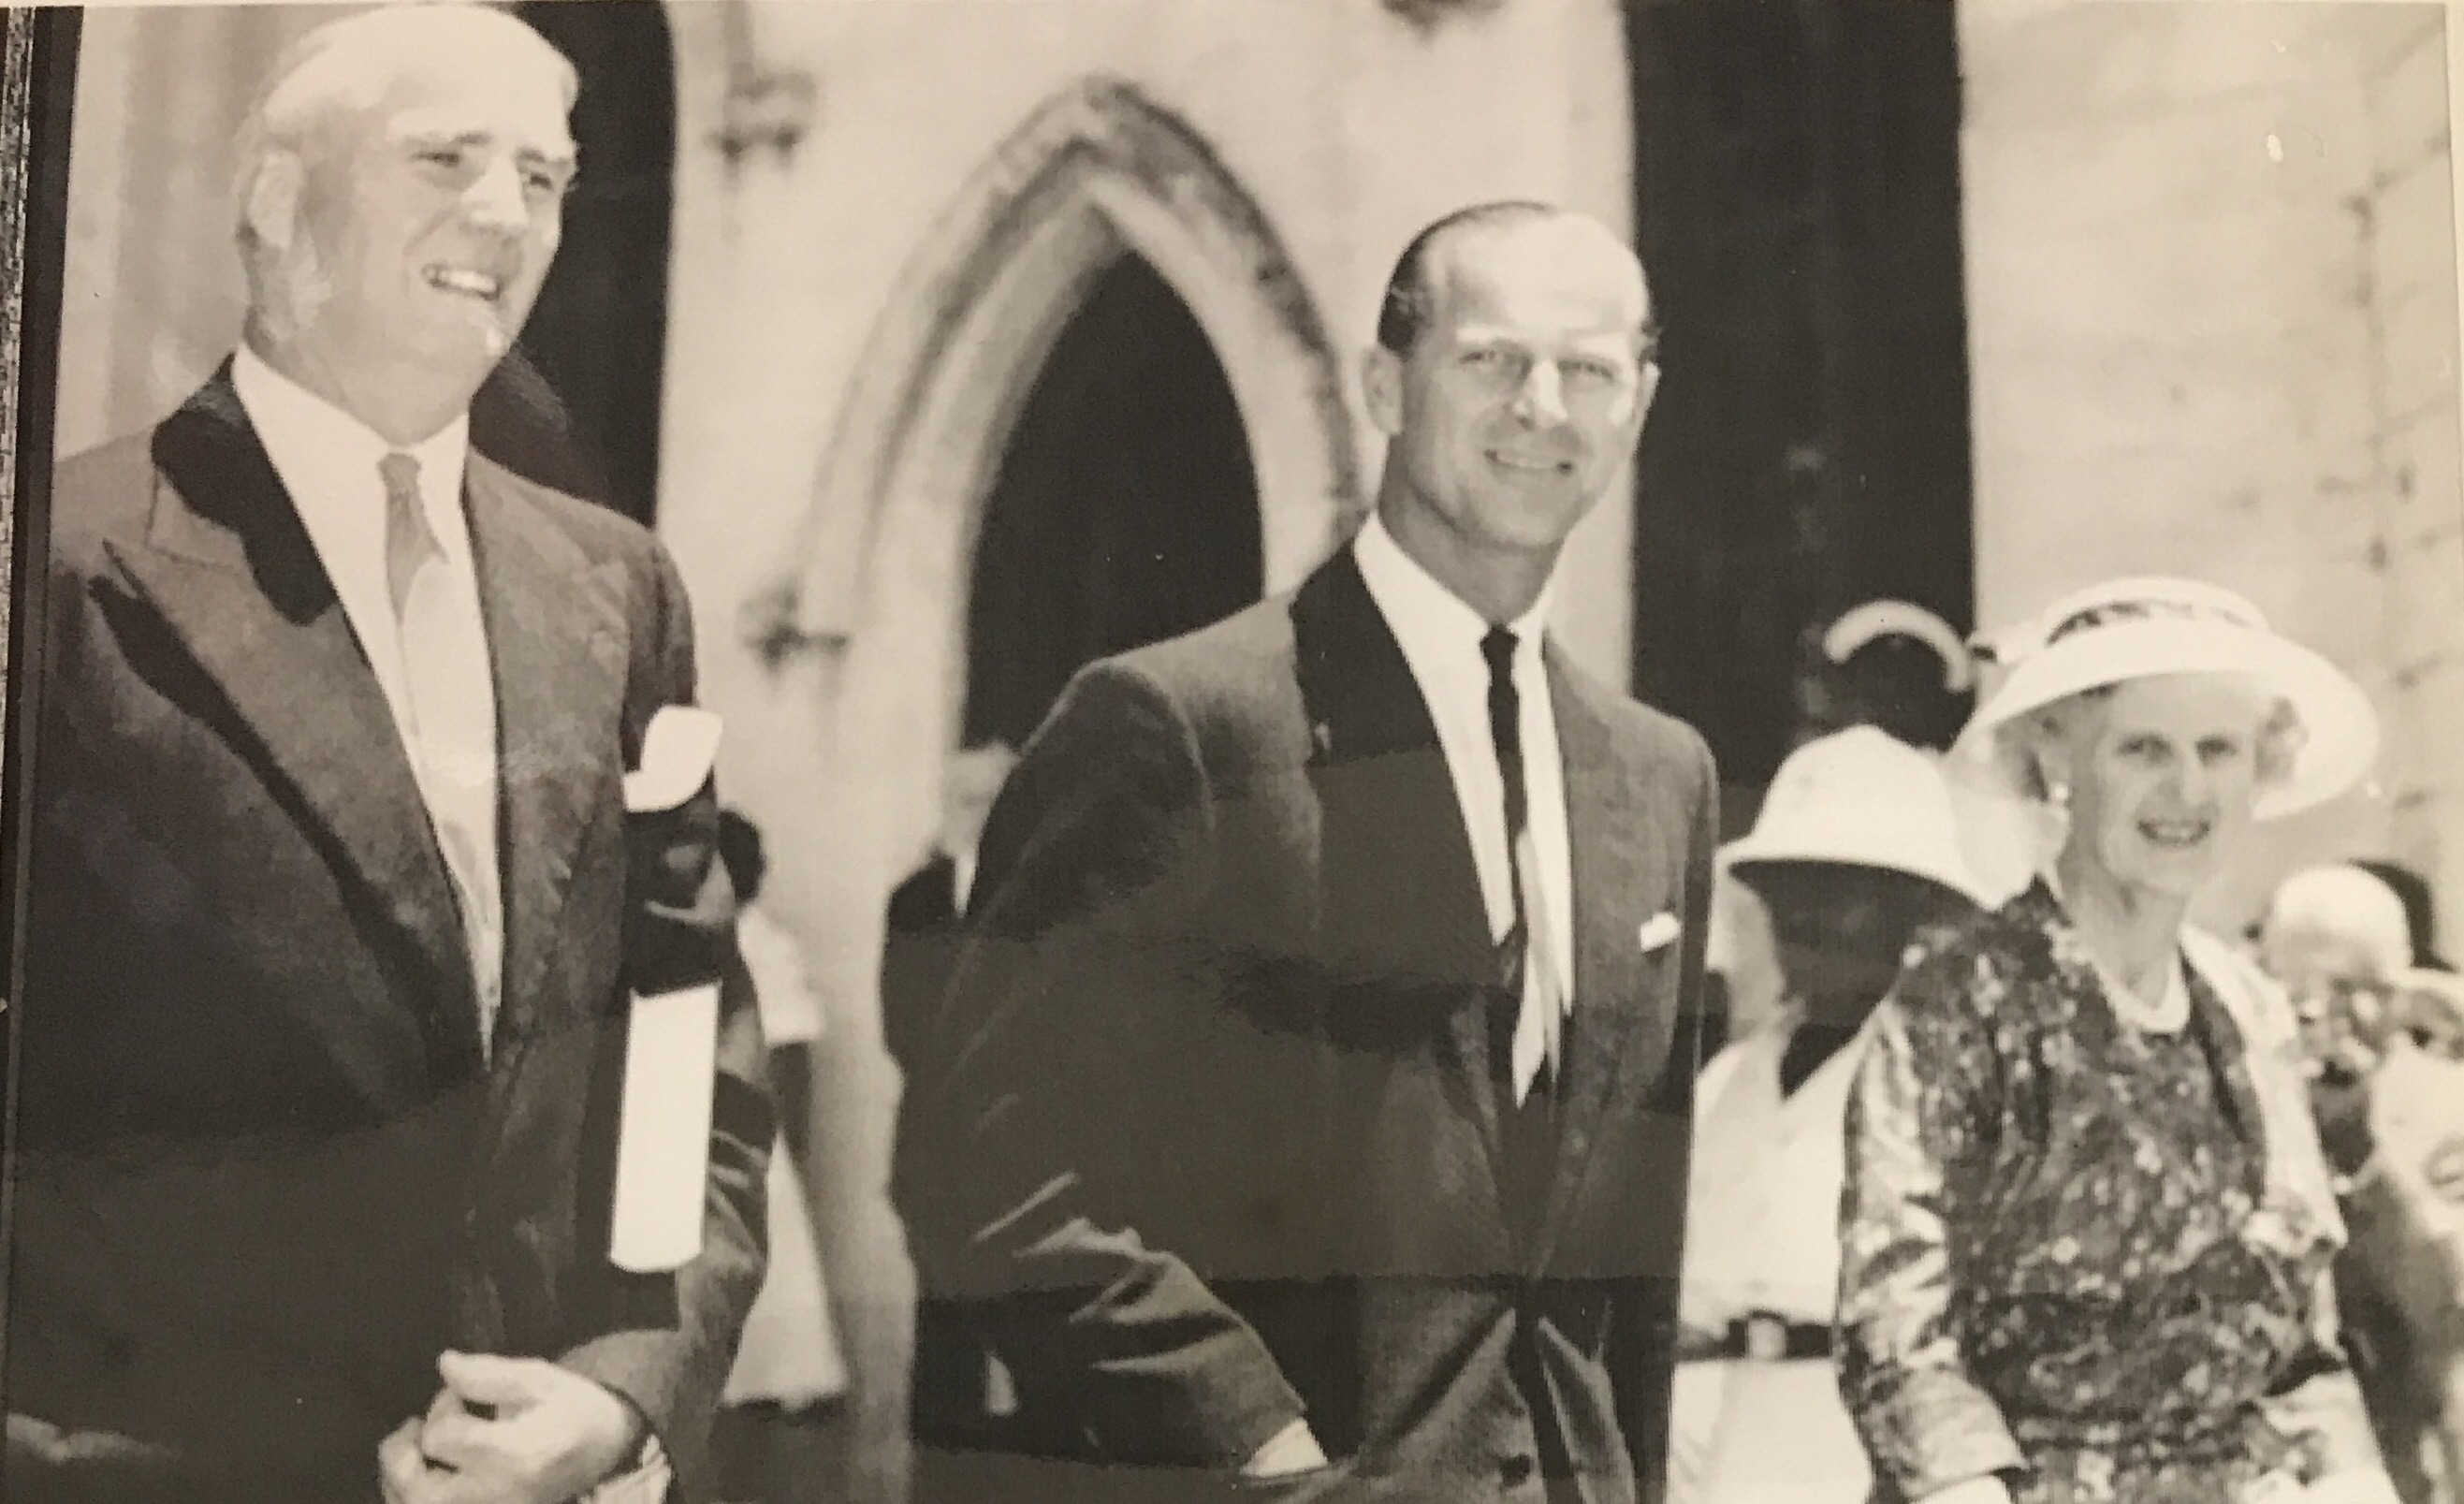 His Royal Highness Prince Philip of England on official visit to the Bahamas 1959